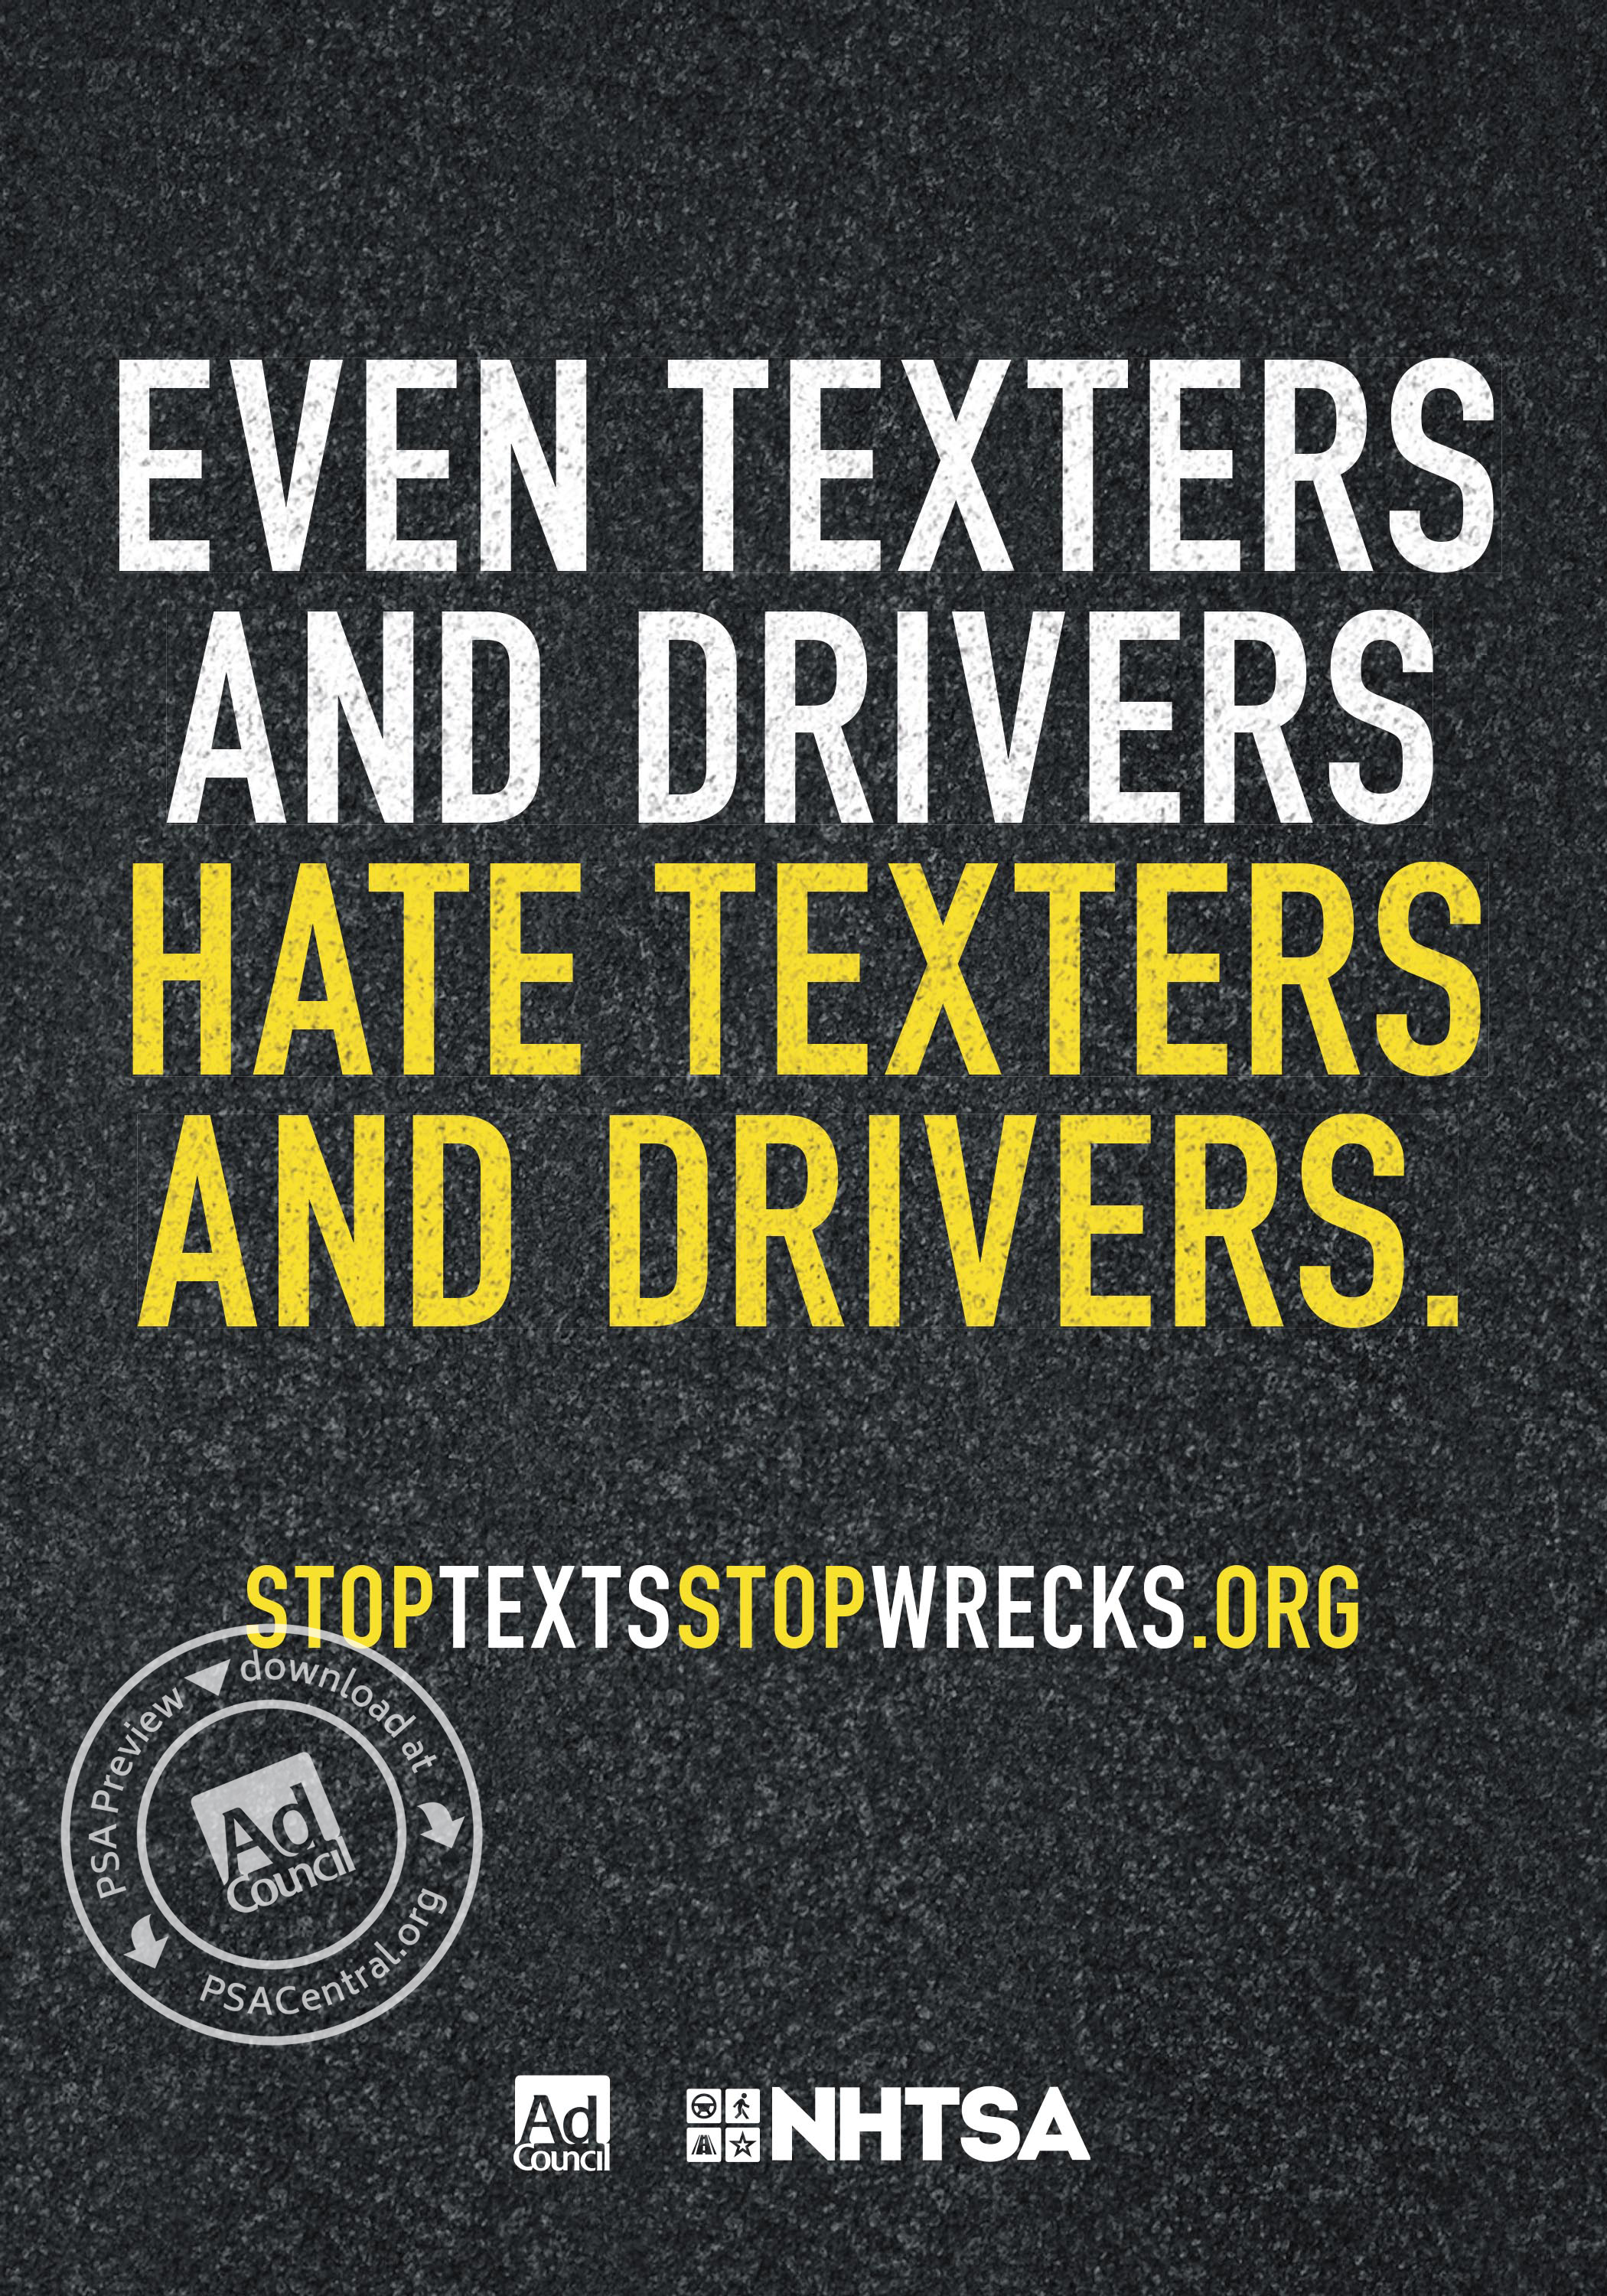 TXT_Hate Texters_MAGAZINE_7x10.indd